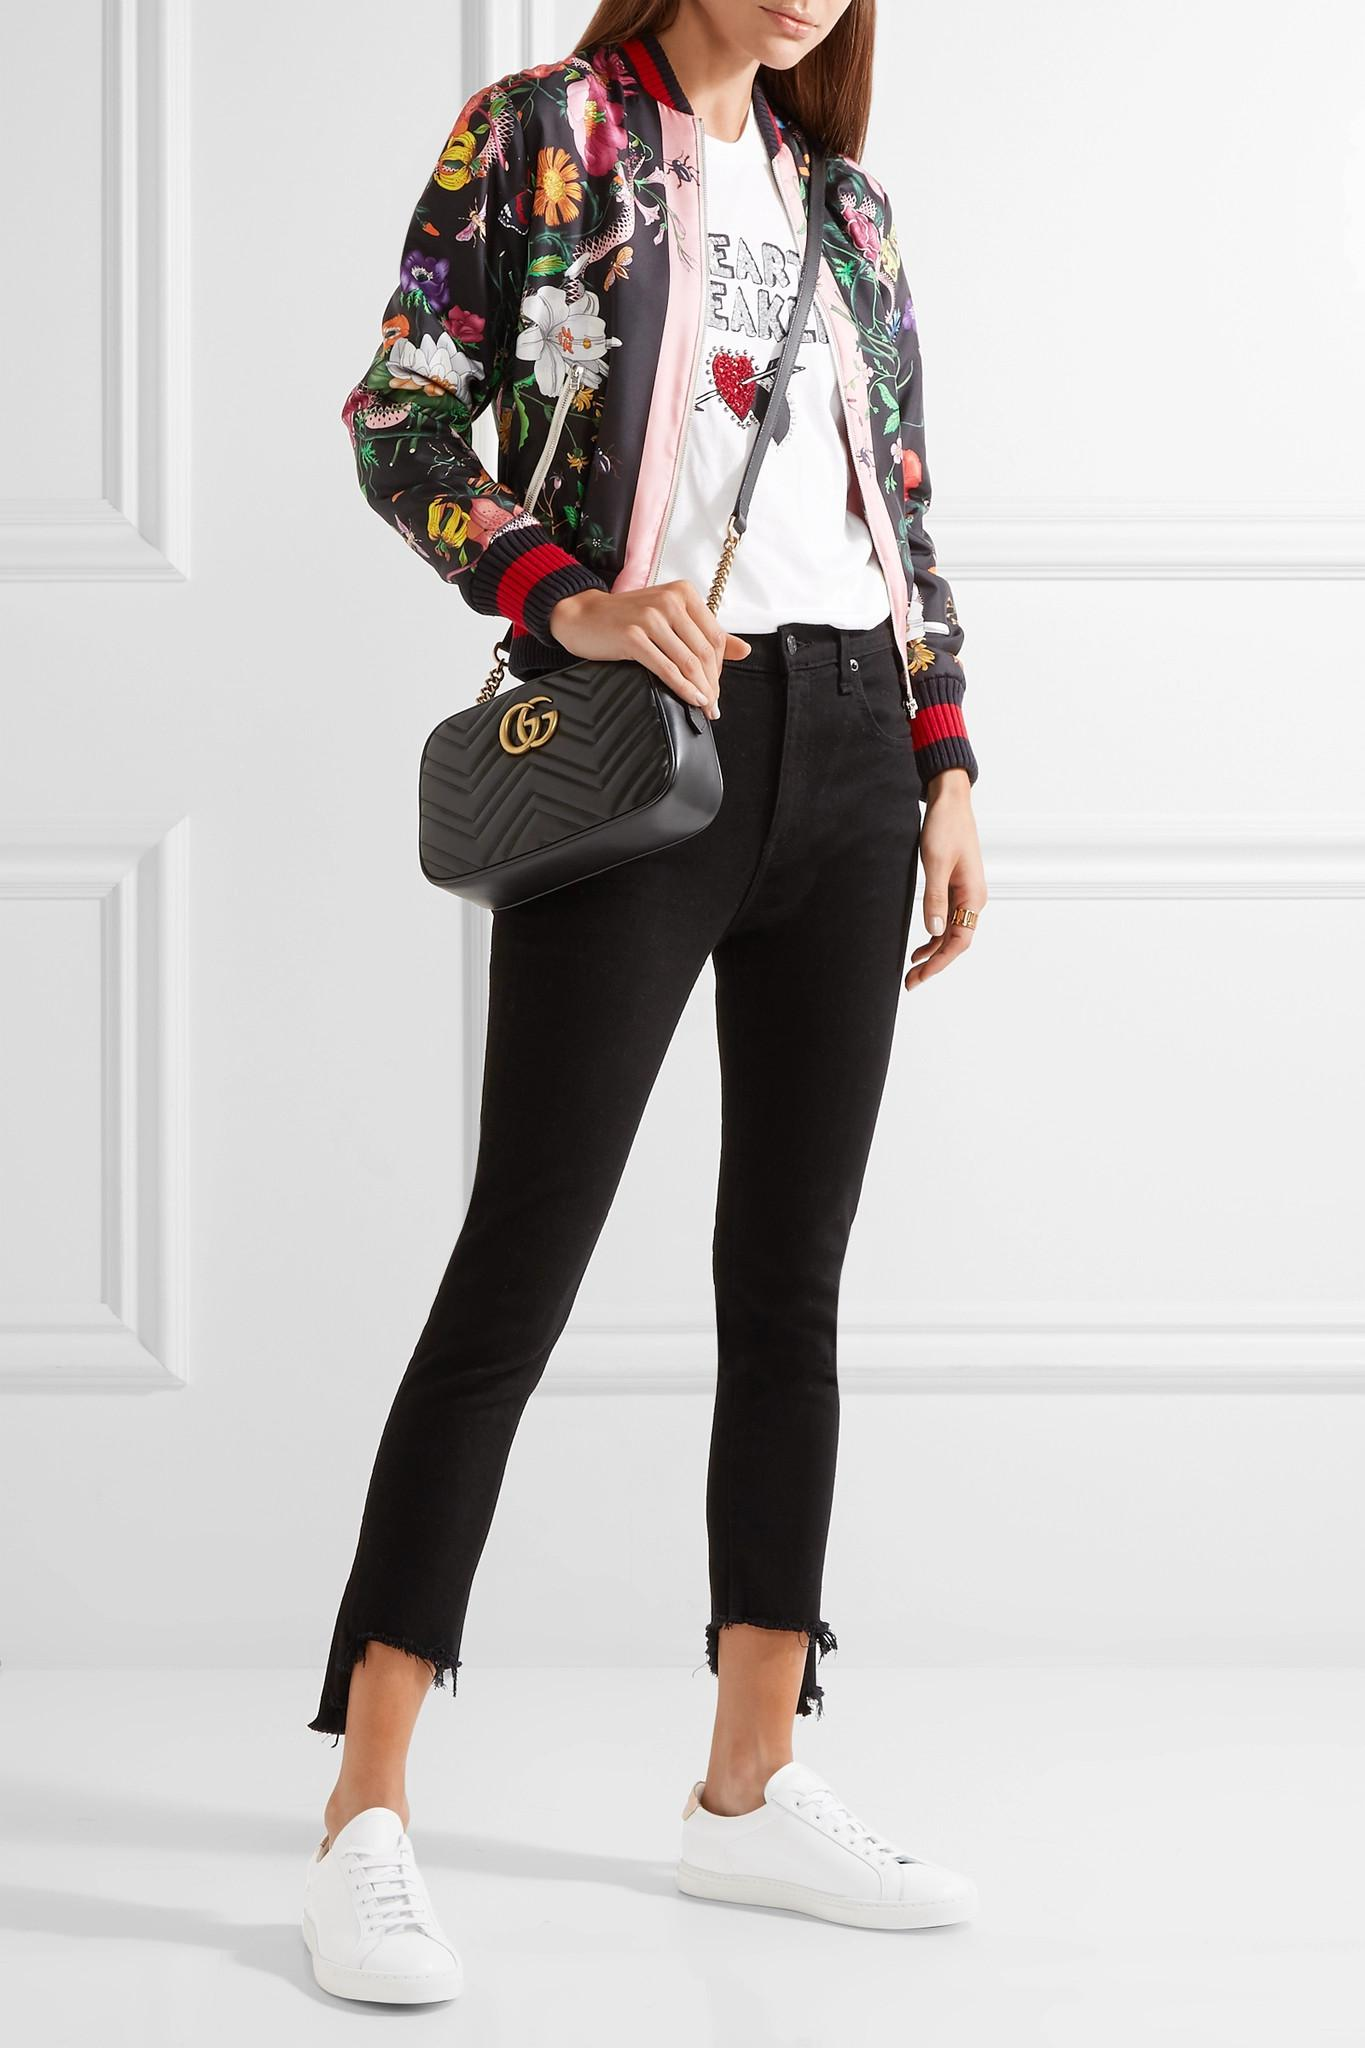 c3792cd604aee9 ... Gg Marmont Camera Small Quilted Leather Shoulder Bag - Lyst. View  fullscreen